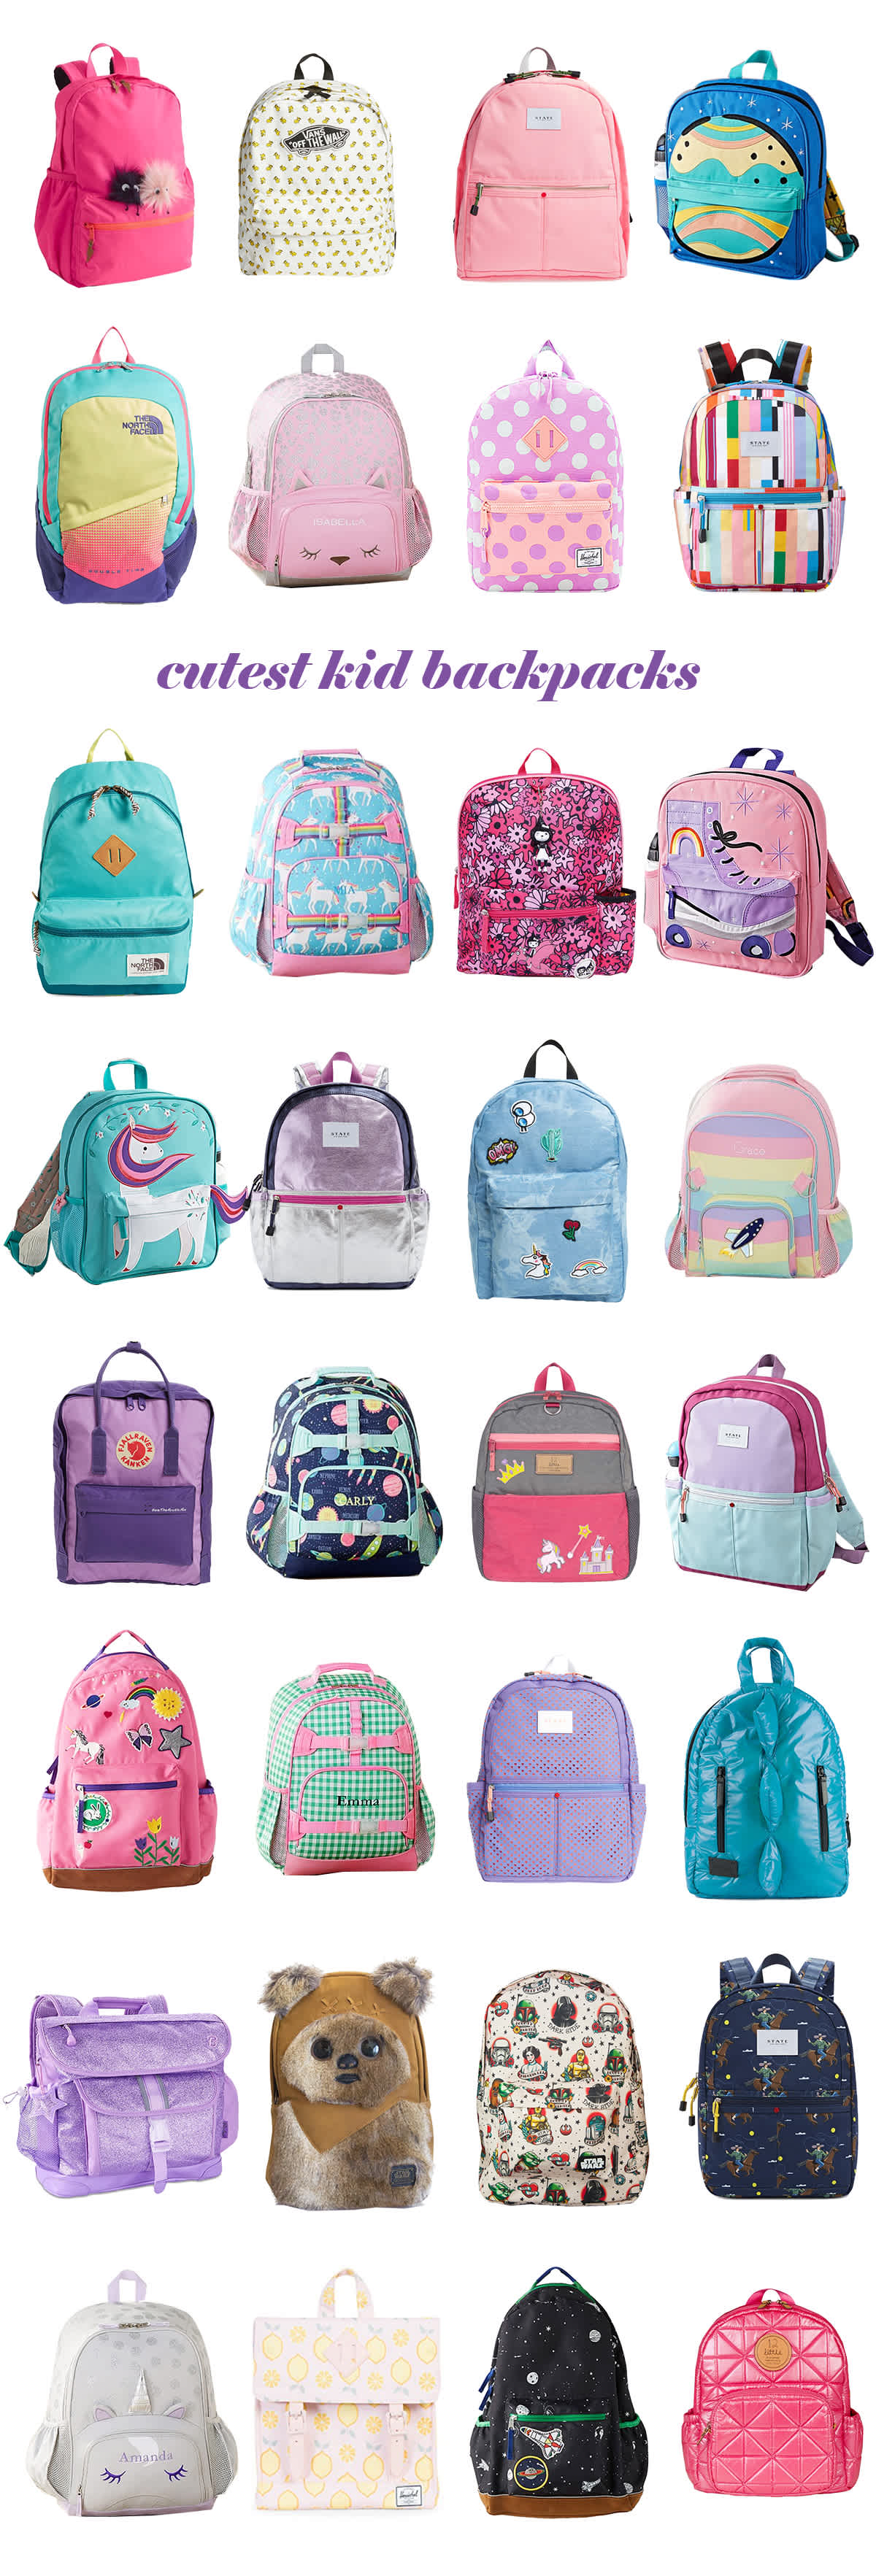 cutest kid backpacks for back to school